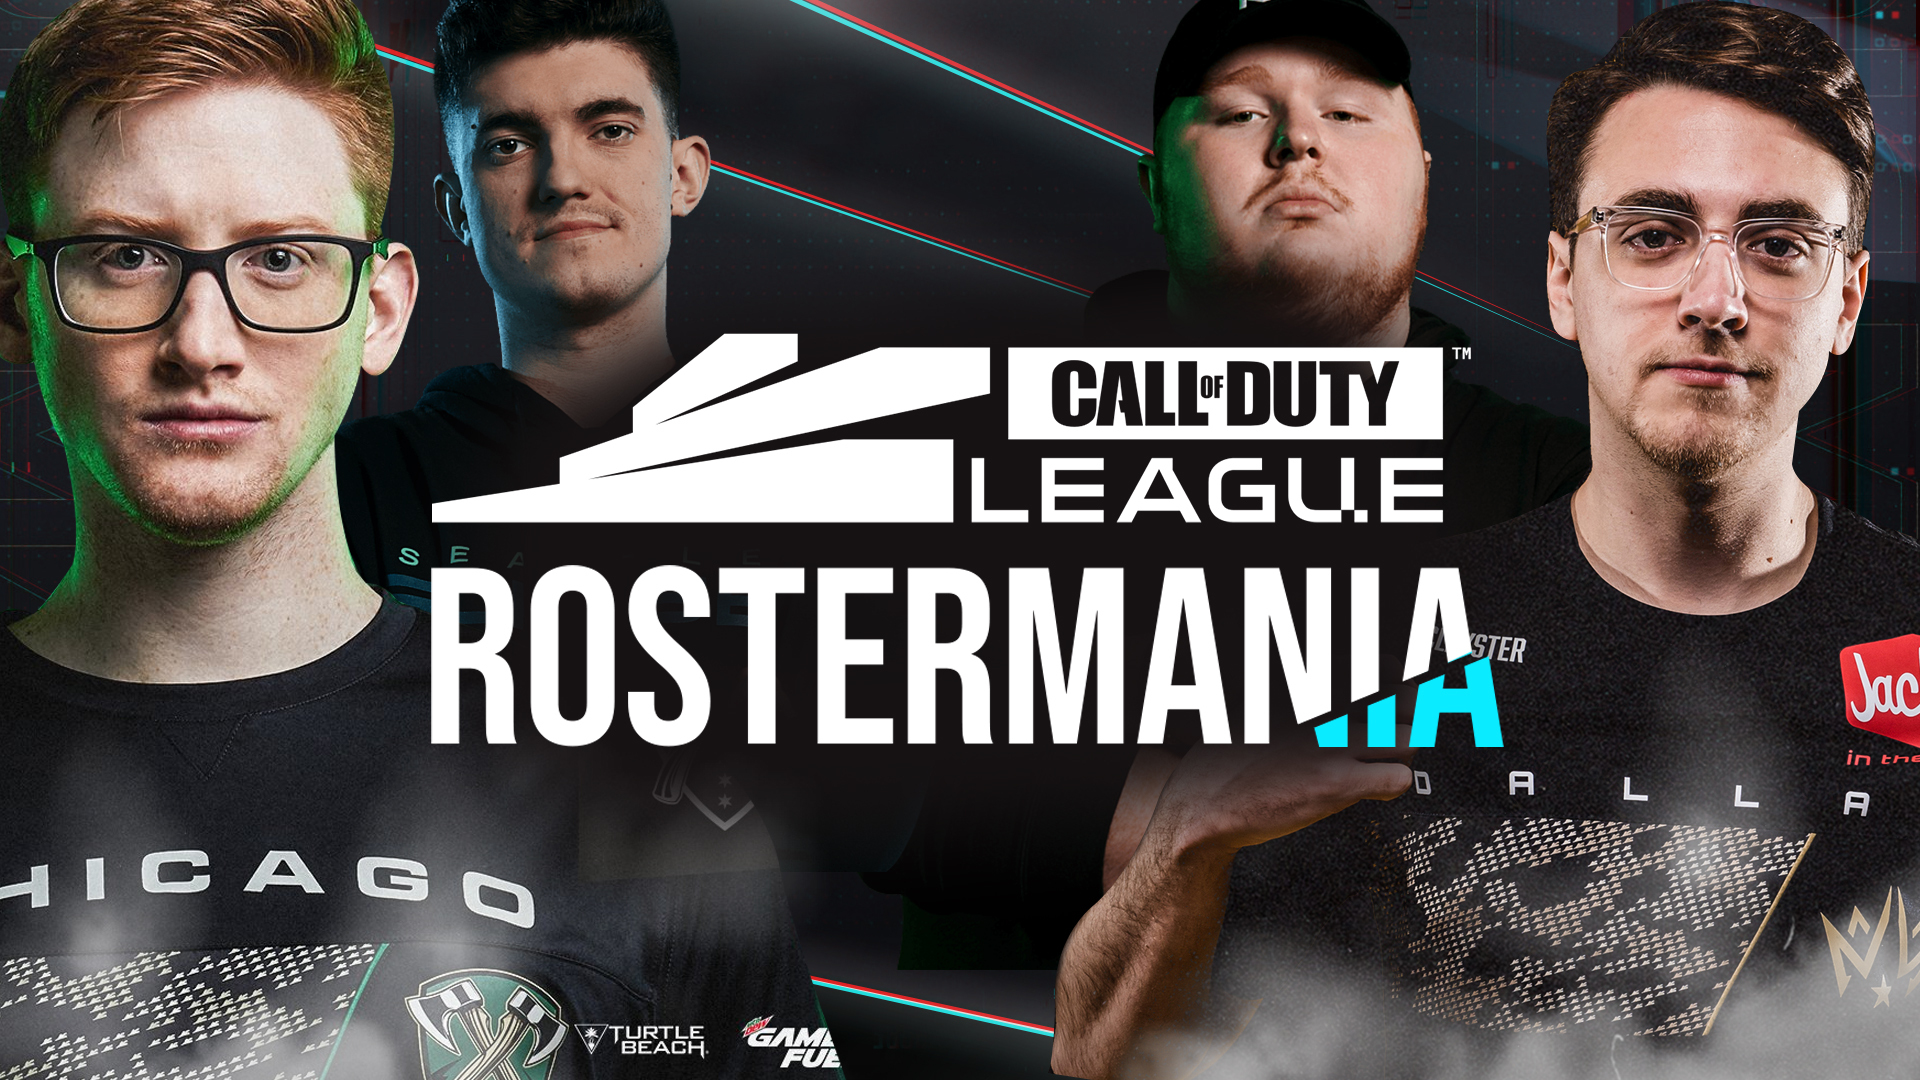 Rostermania Call of Duty League